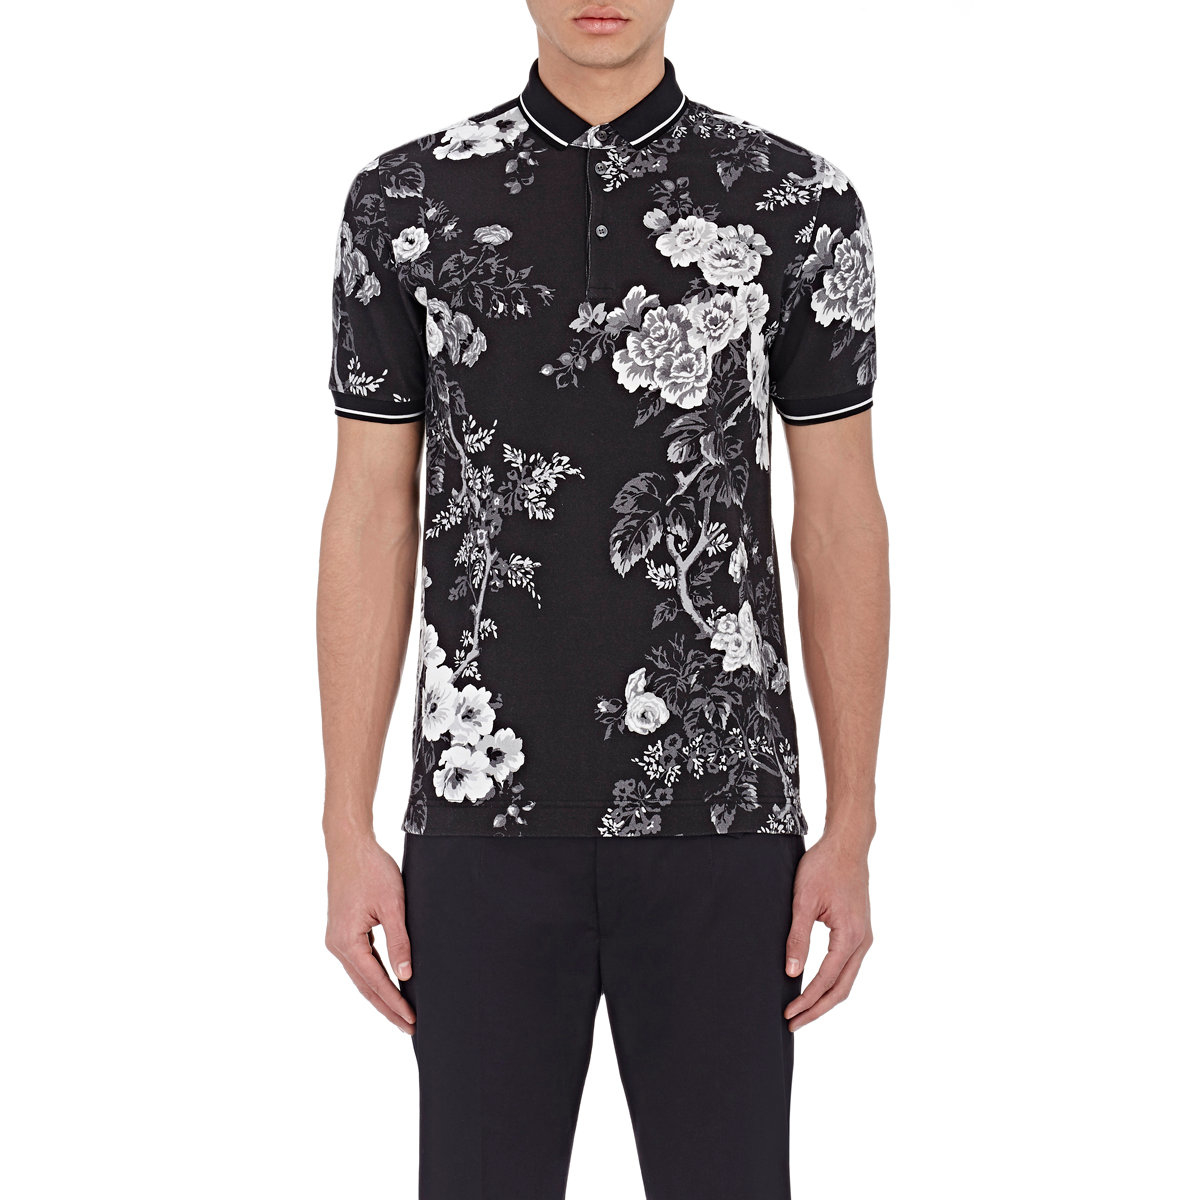 36efe809 Dolce & Gabbana Cactus Printed Silk T-shirt in Black for Men - Lyst